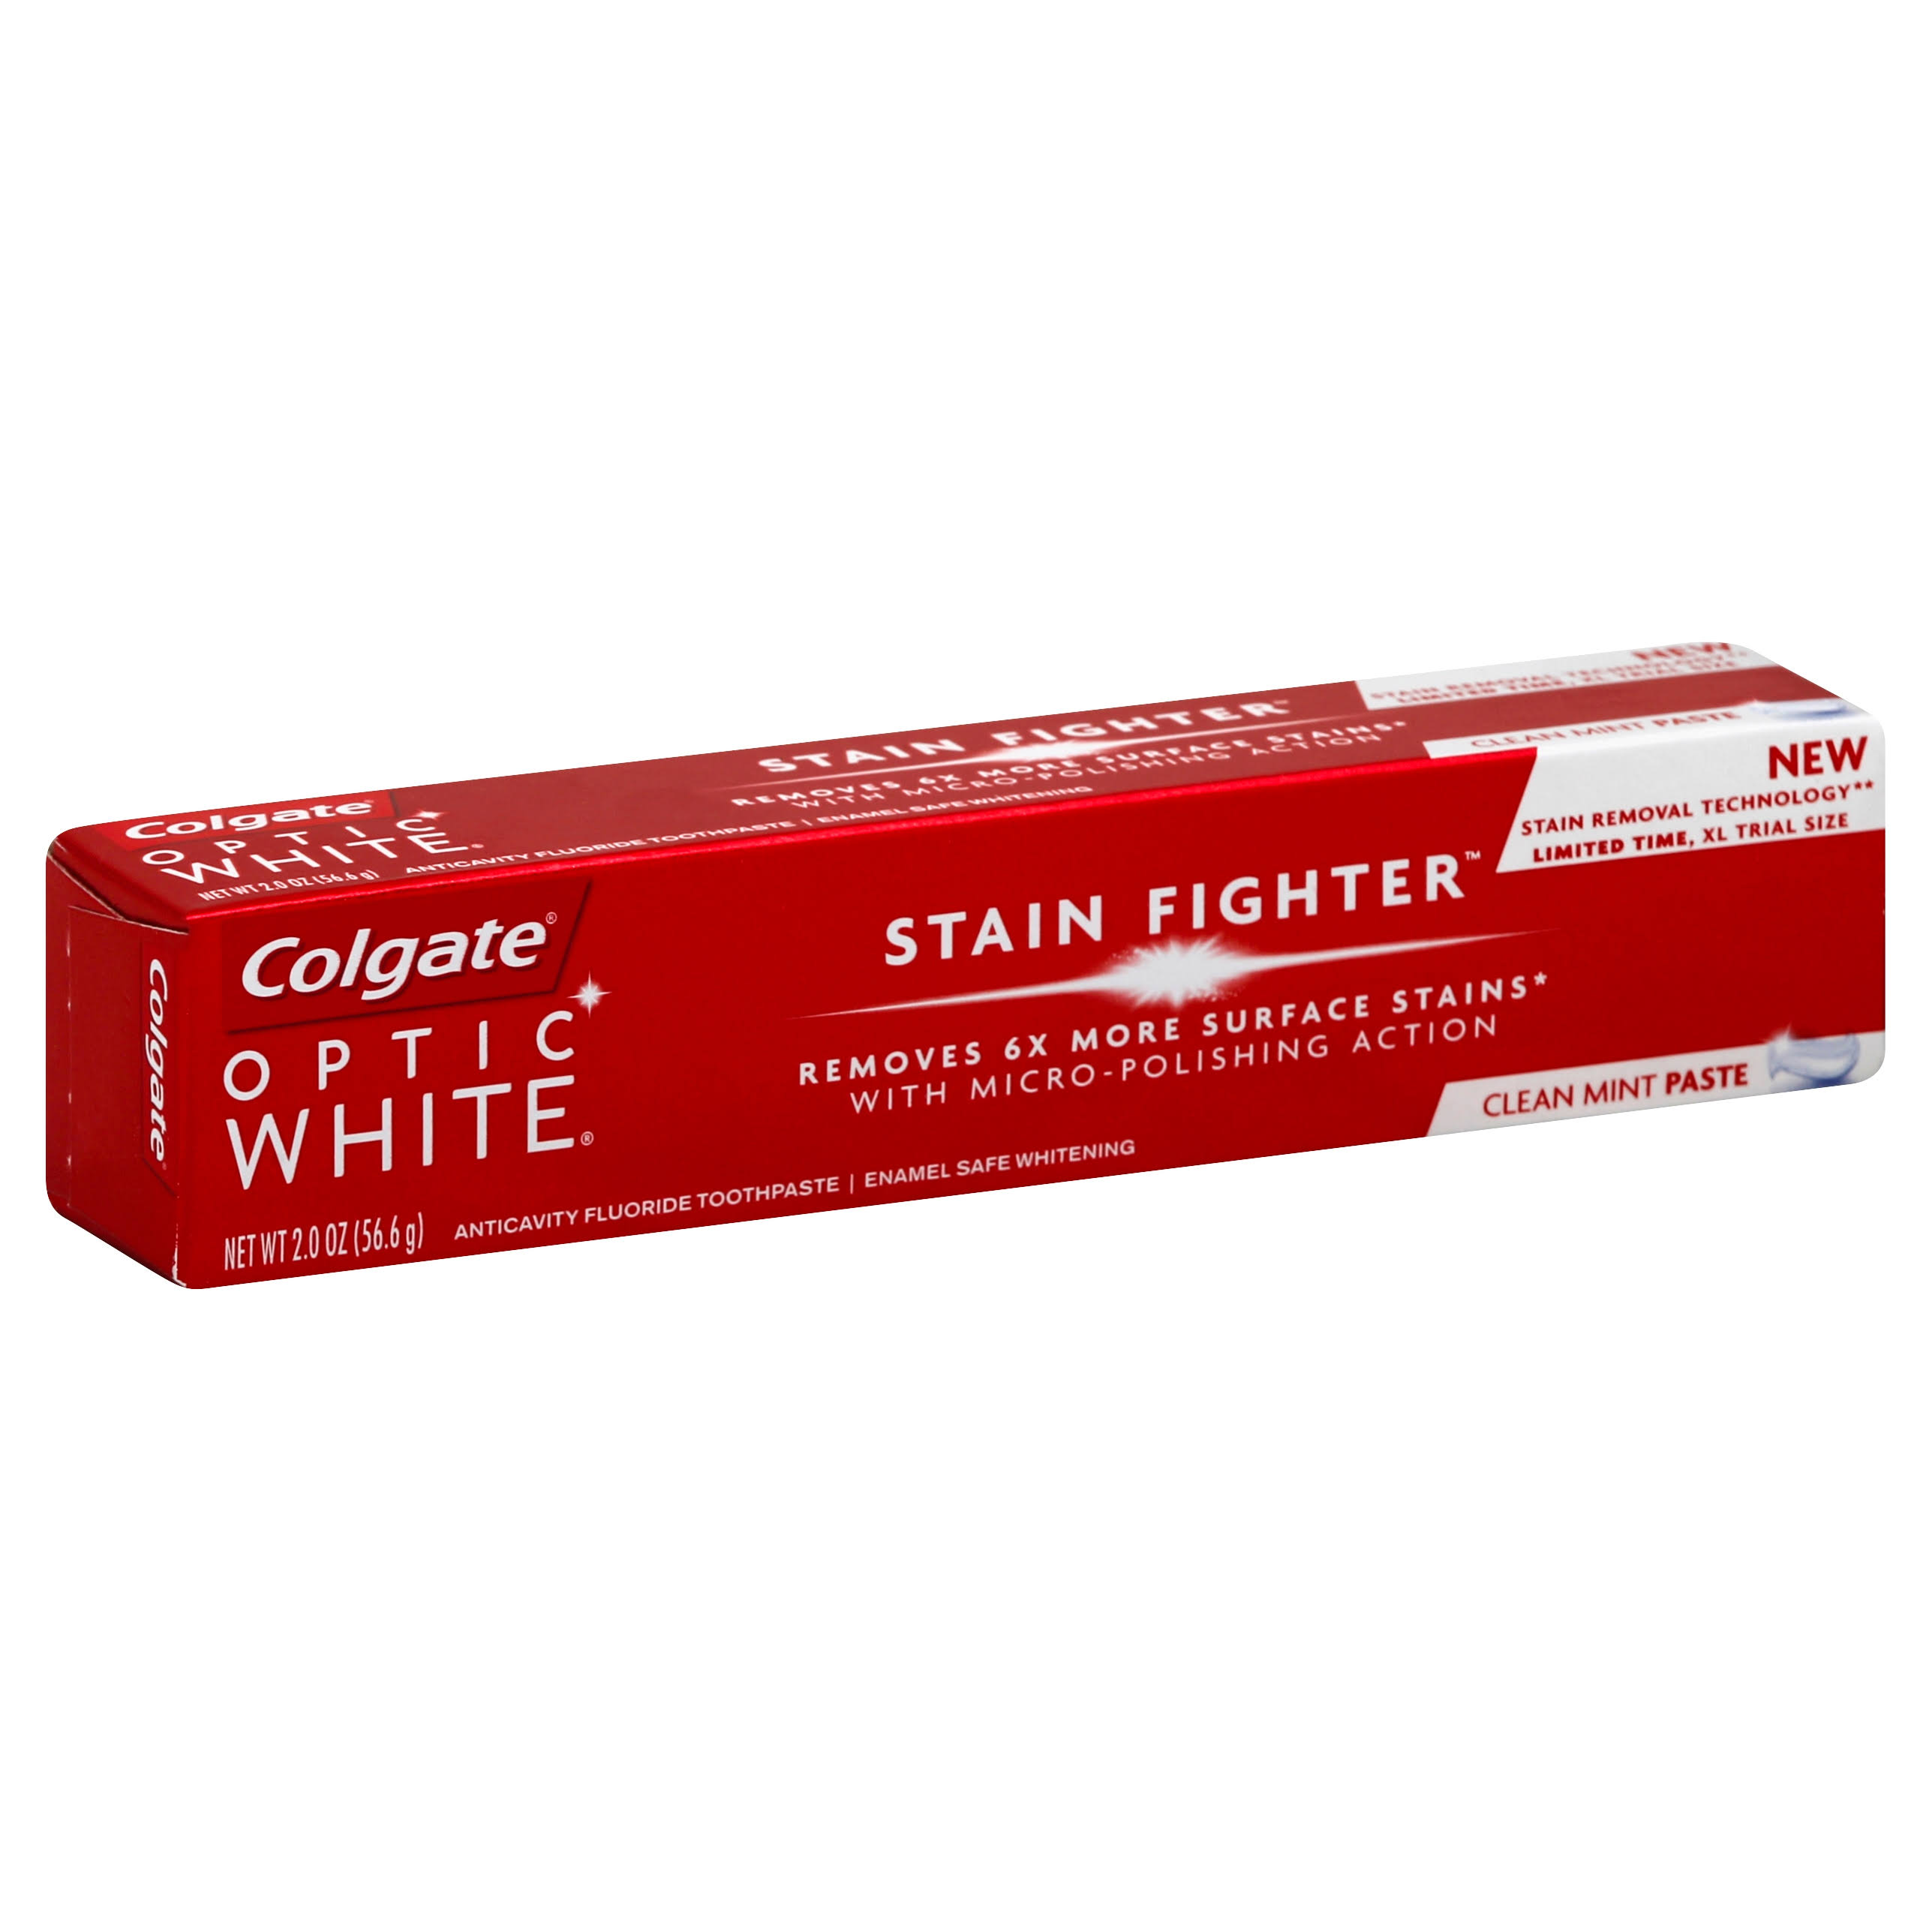 Colgate Optic White Toothpaste, Stain Fighter, Clean Mint Paste - 2.0 oz